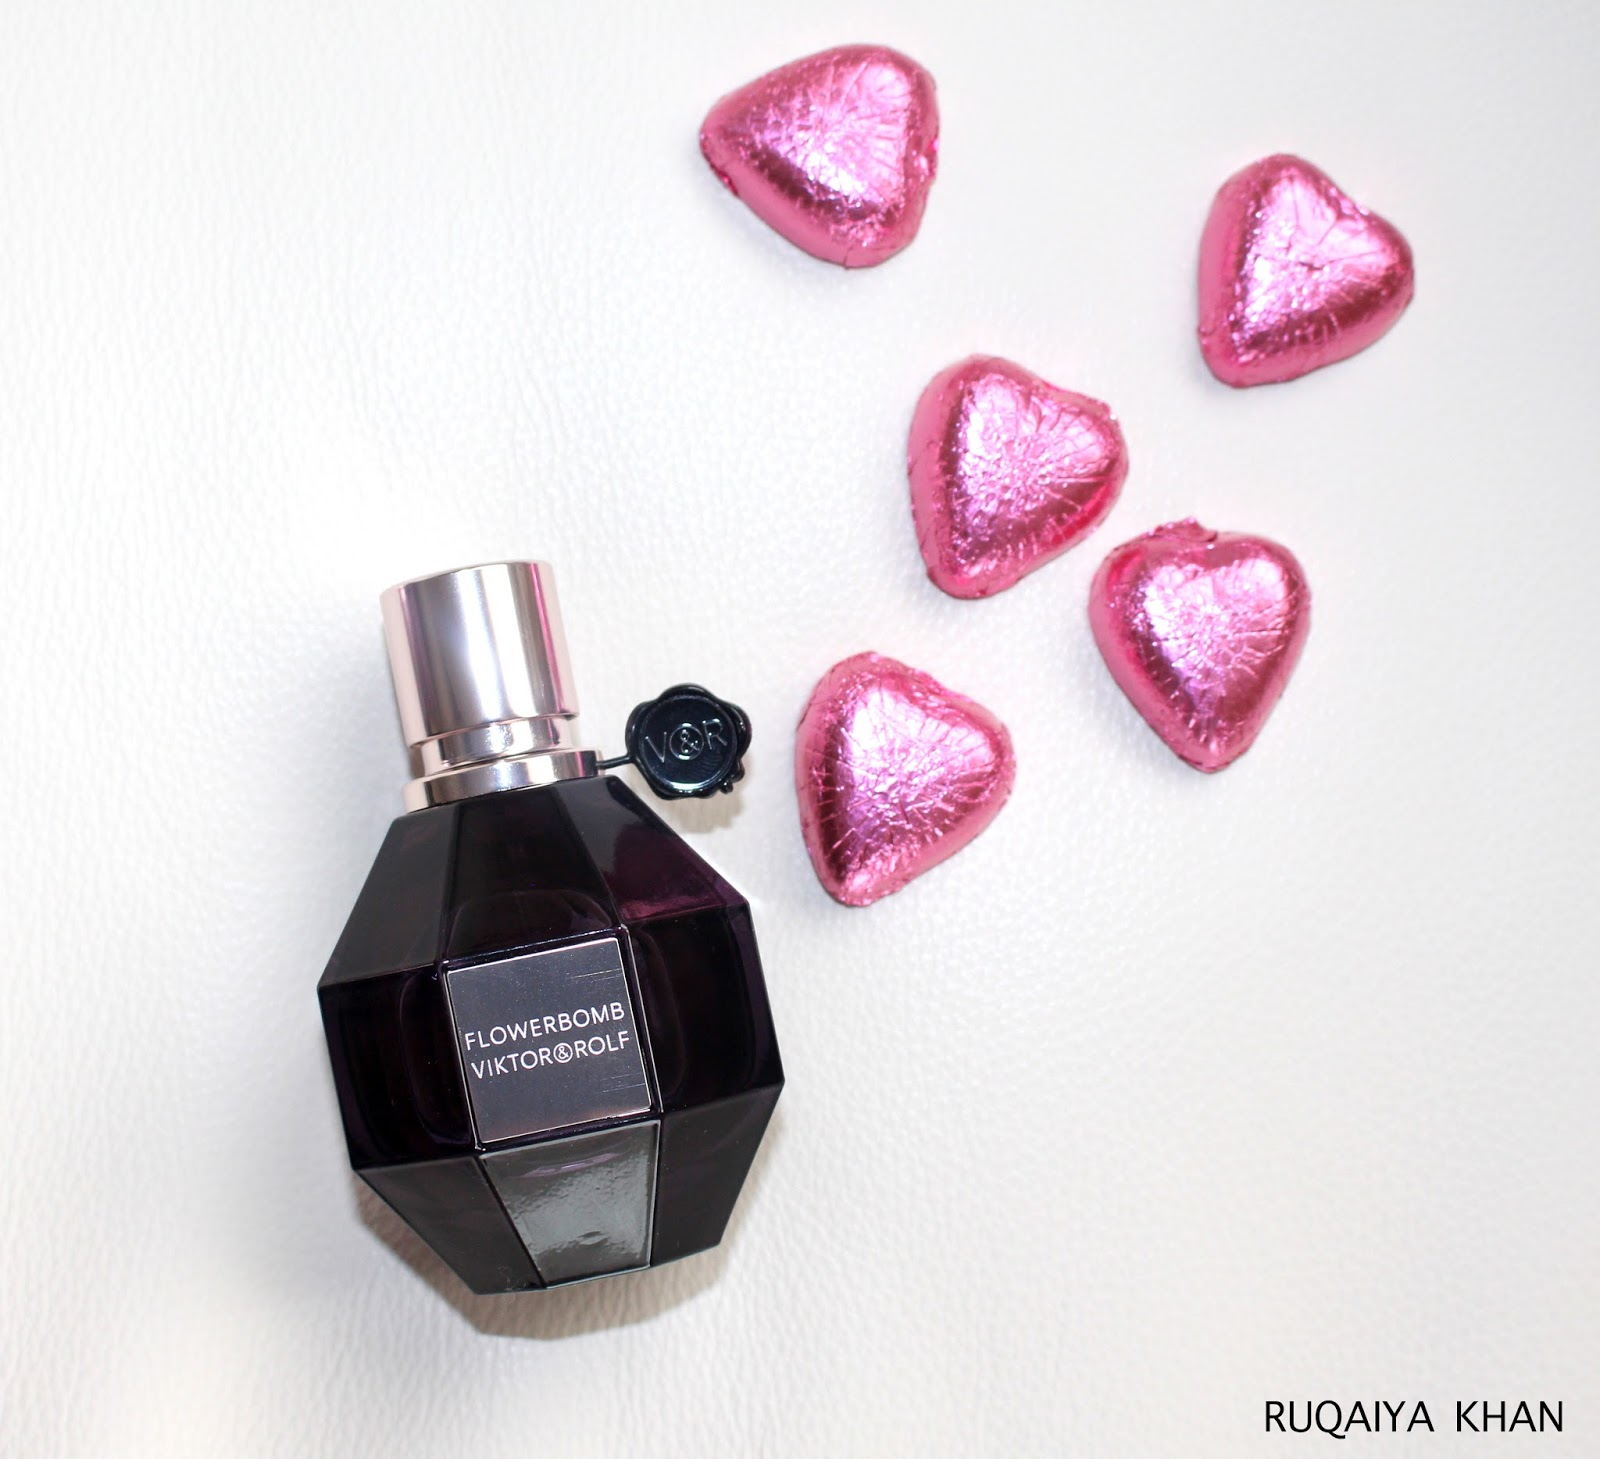 viktor rolf flowerbomb extreme review